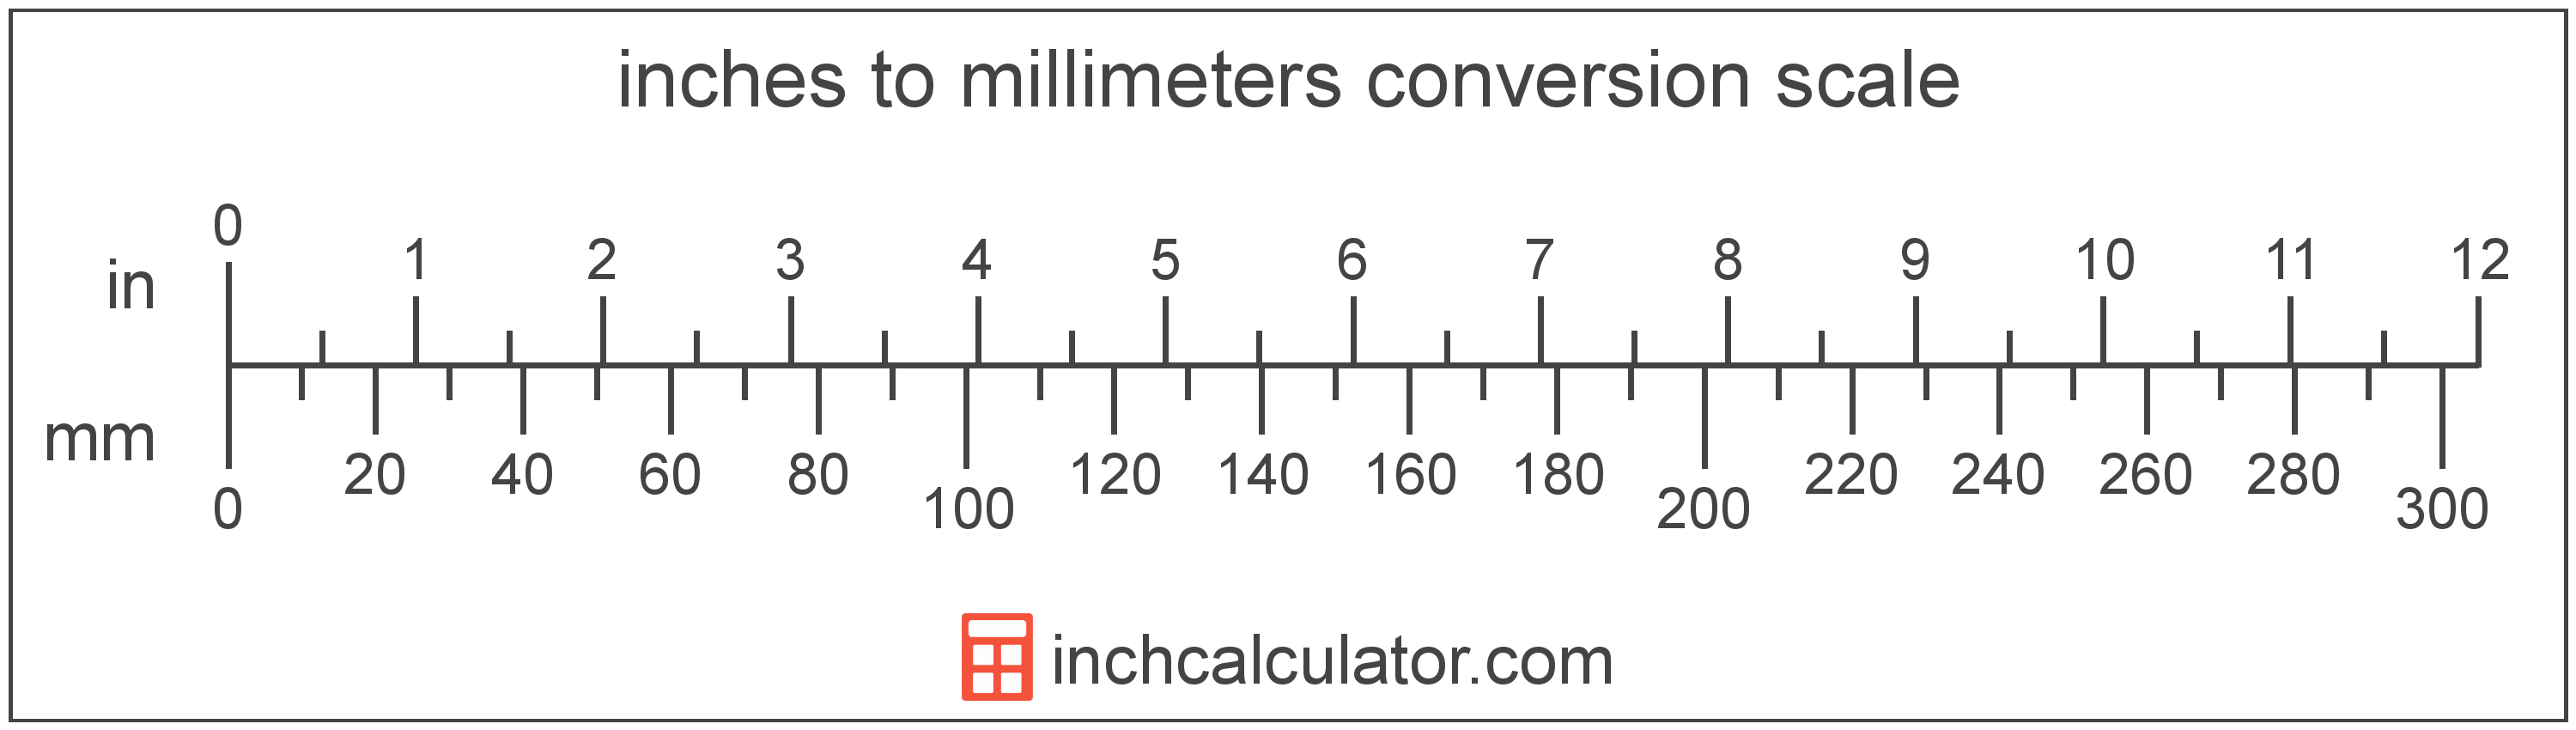 inches and kilometers are units used to measure length